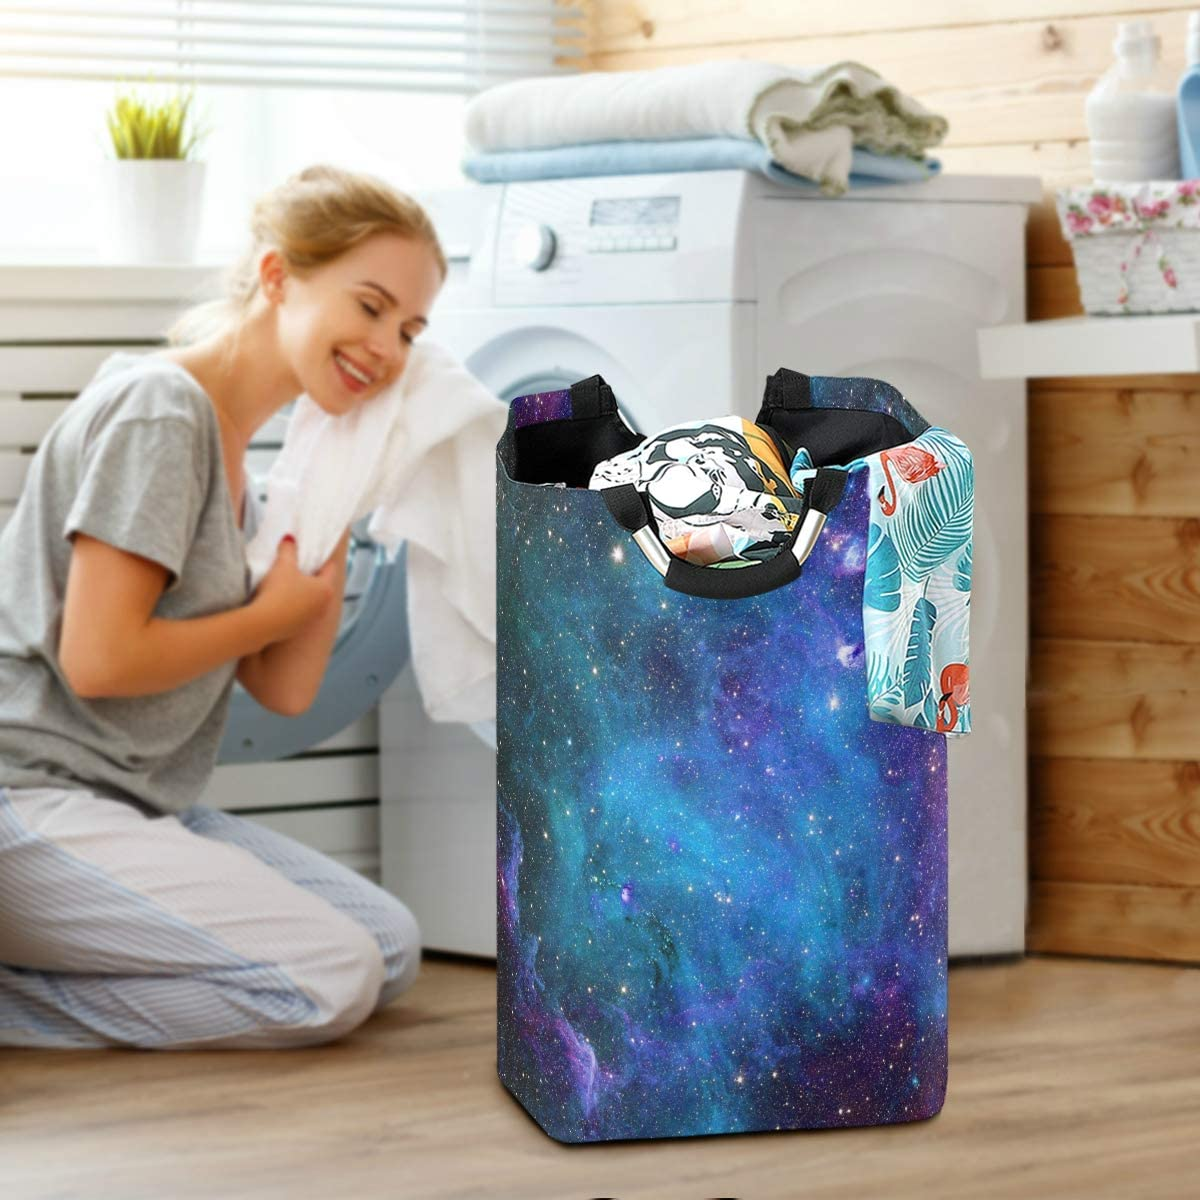 OREZI Blue Purple Galaxy Stars Laundry Hamper,Waterproof and Foldable Laundry Bag with Handles for Baby Nursery College Dorms Kids Bedroom Bathroom